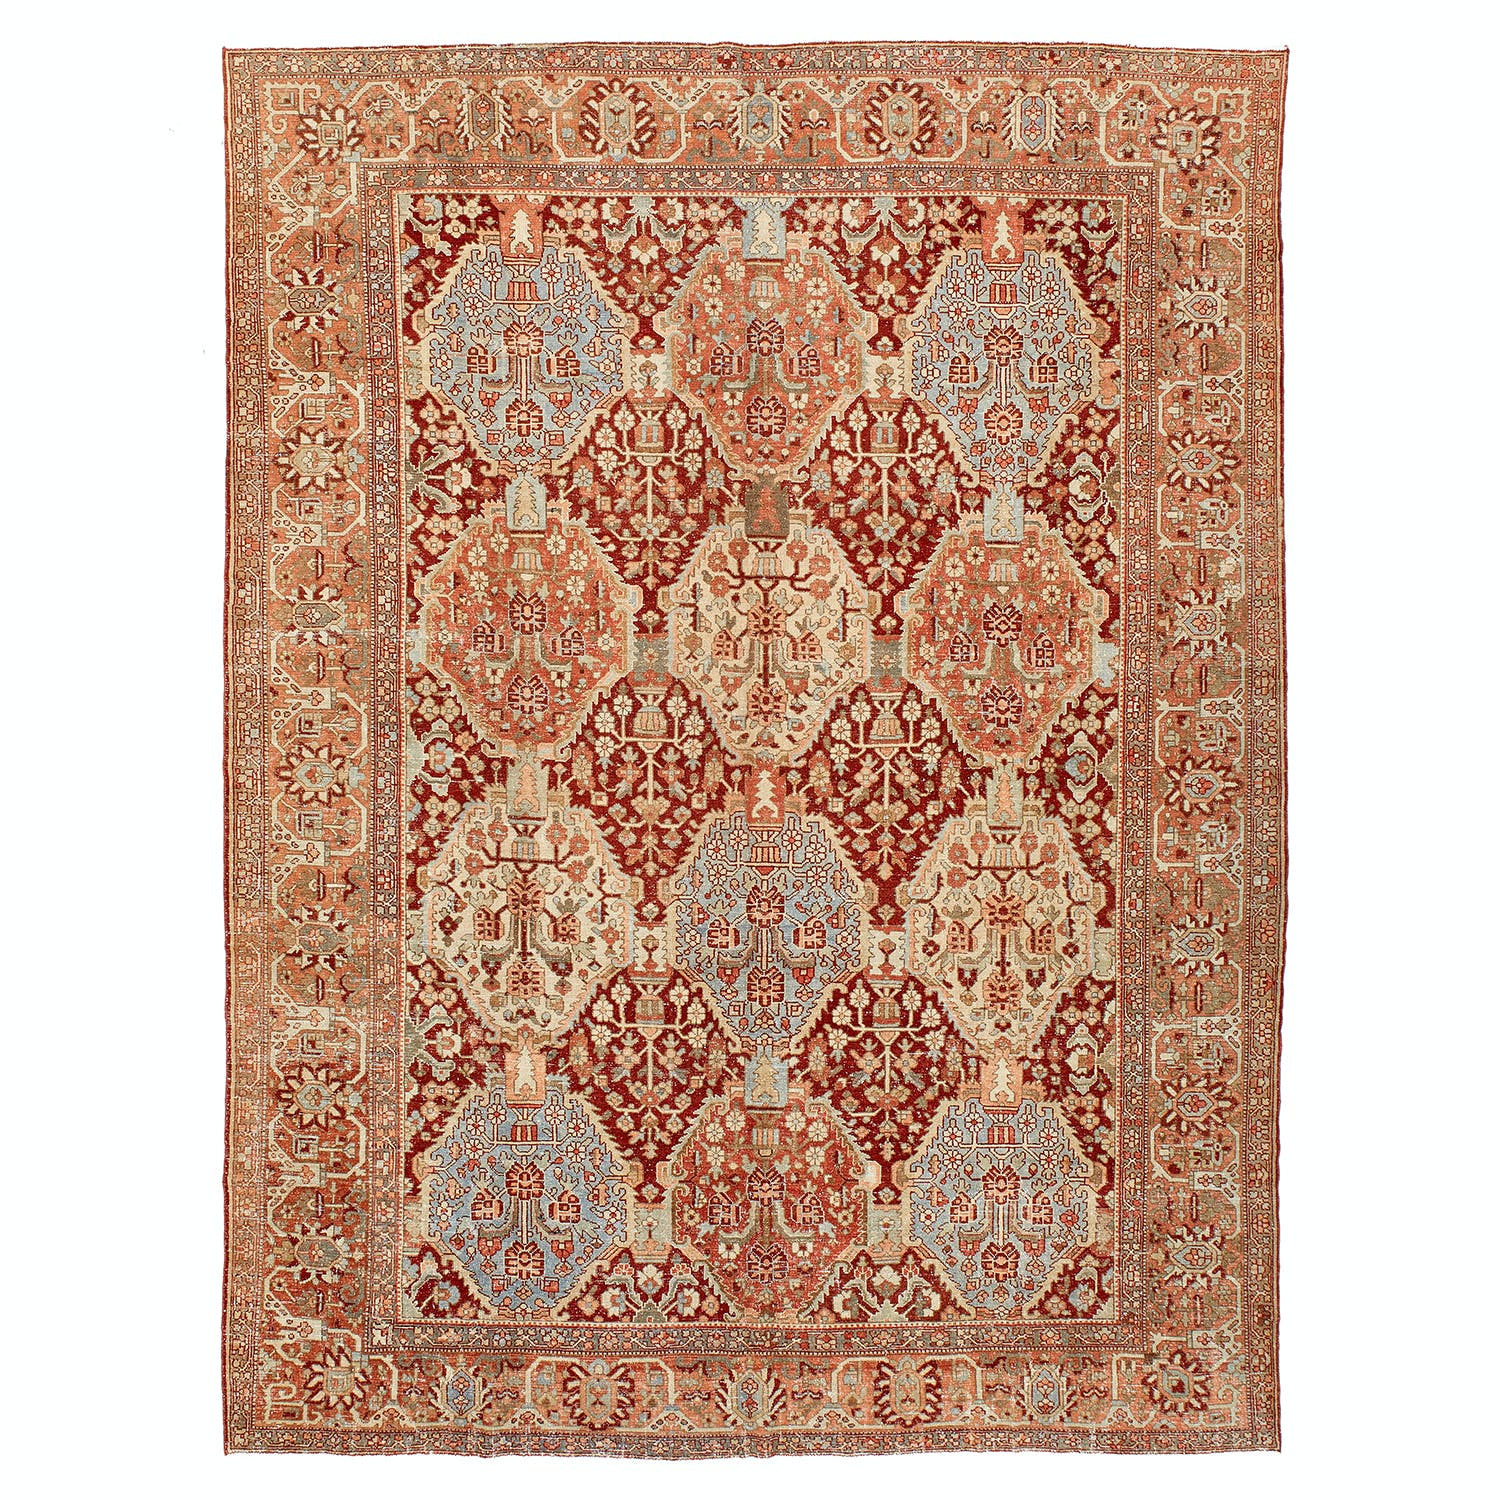 Product Image - Antique Bakhtiari Rug-12'x16'